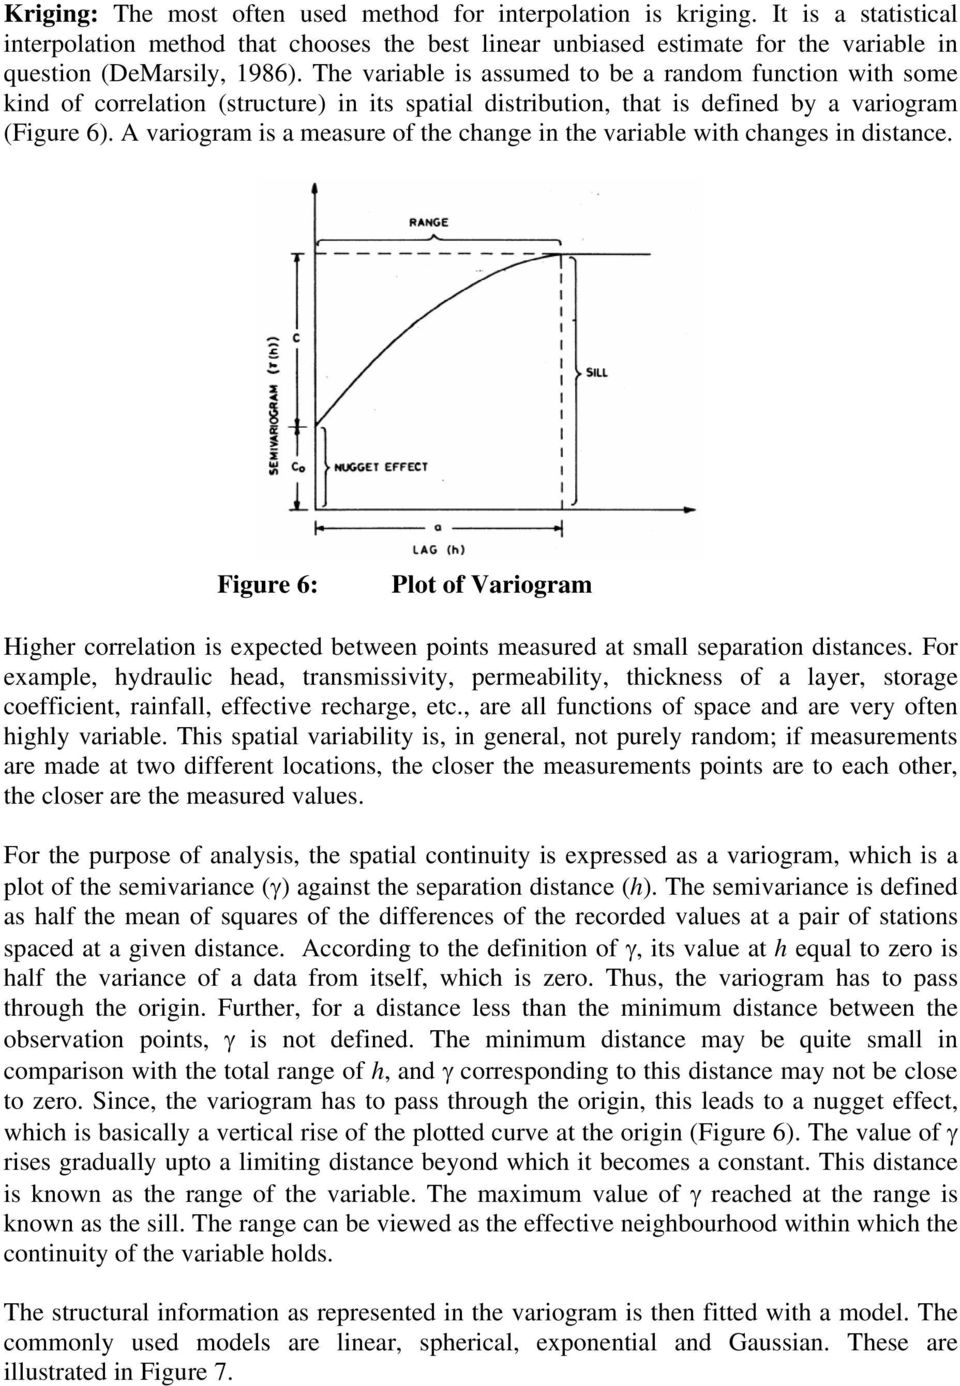 The variable is assumed to be a random function with some kind of correlation (structure) in its spatial distribution, that is defined by a variogram (Figure 6).